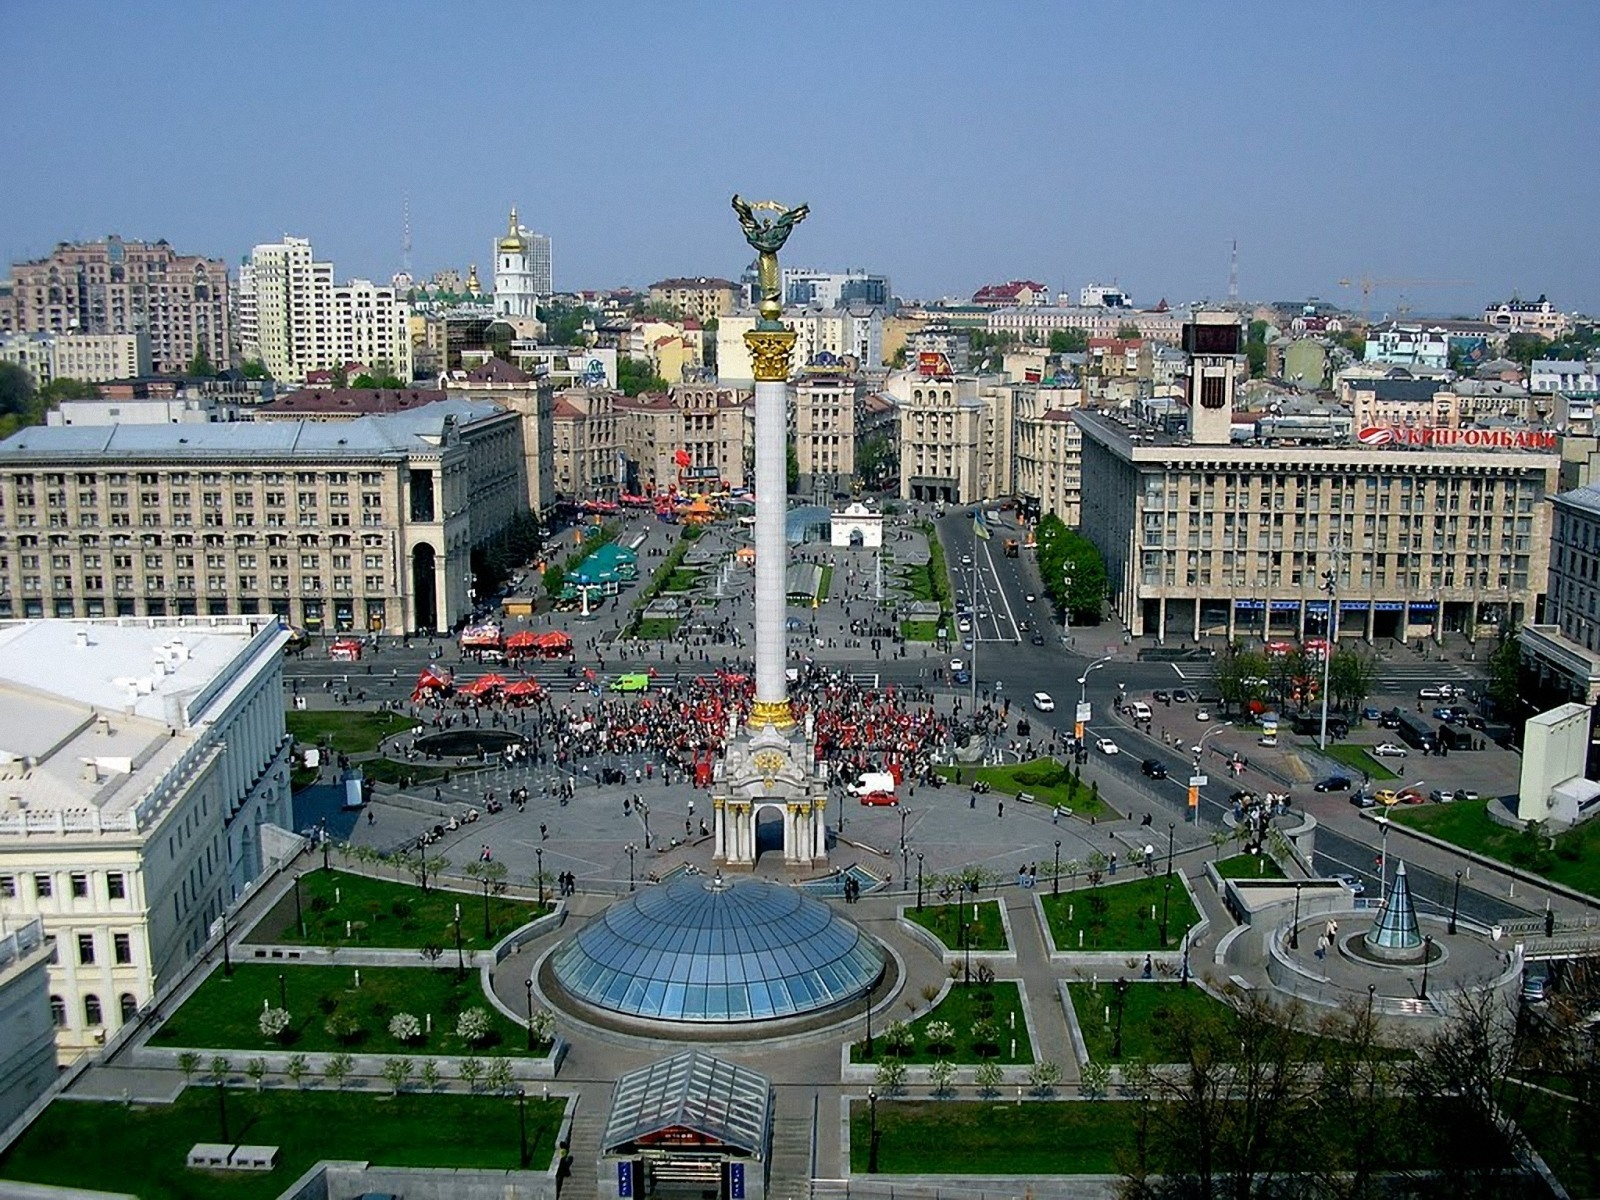 click to free download the wallpaper--Beautiful Images of Landscape, Kiev Square, Crowded People and Buildings, the Blue Sky